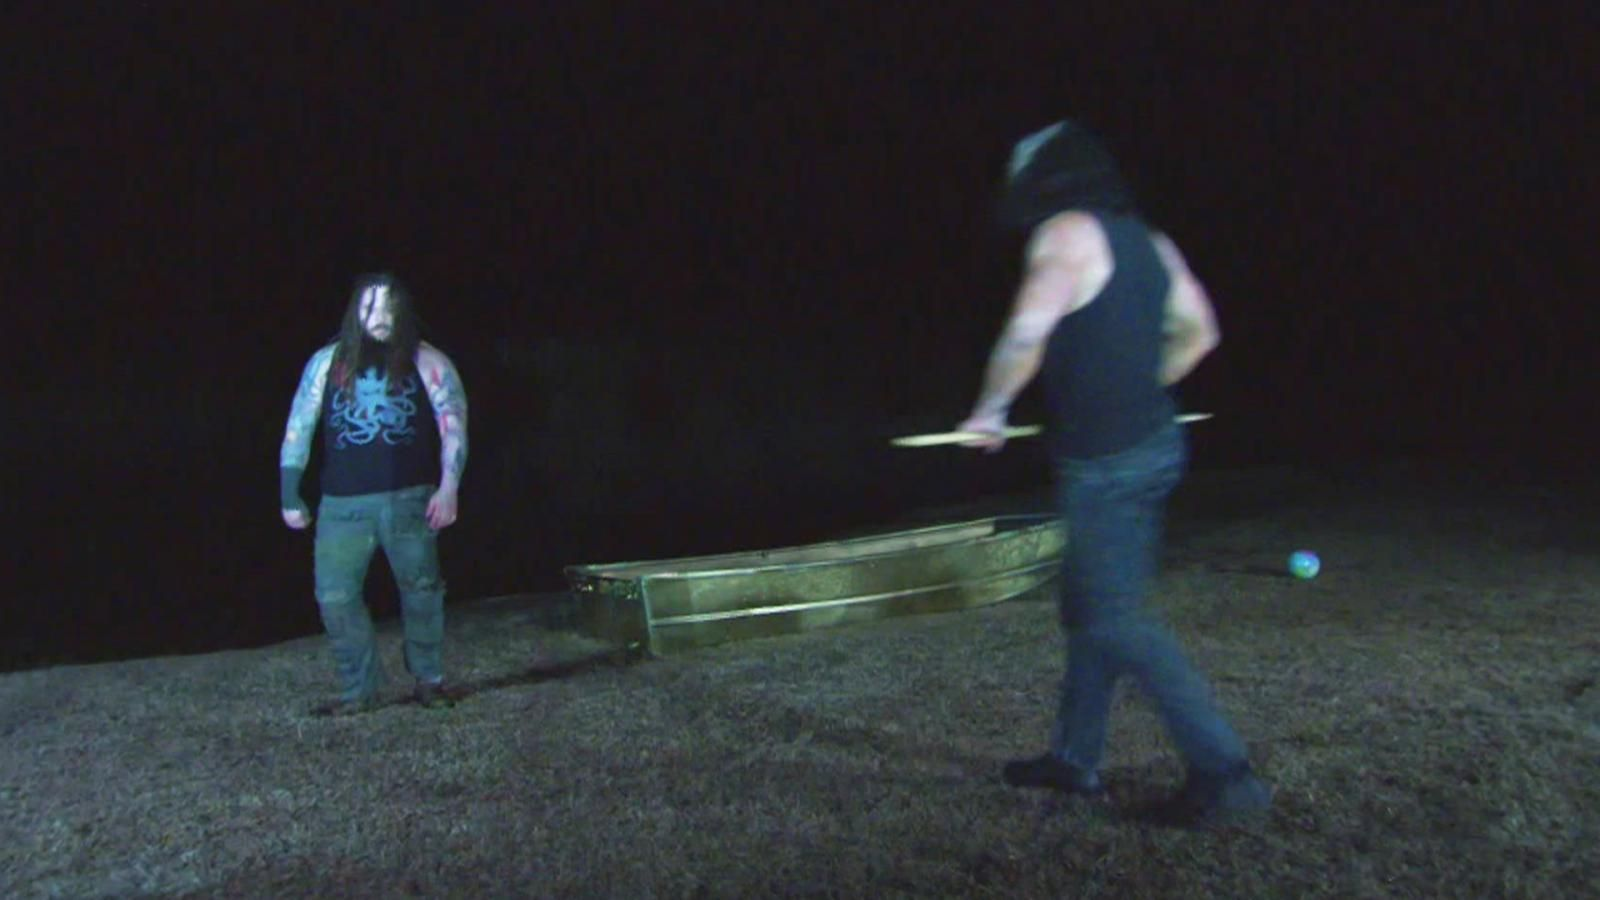 Watch: the ultimate deletion between matt hardy and bray wyatt was completely insane